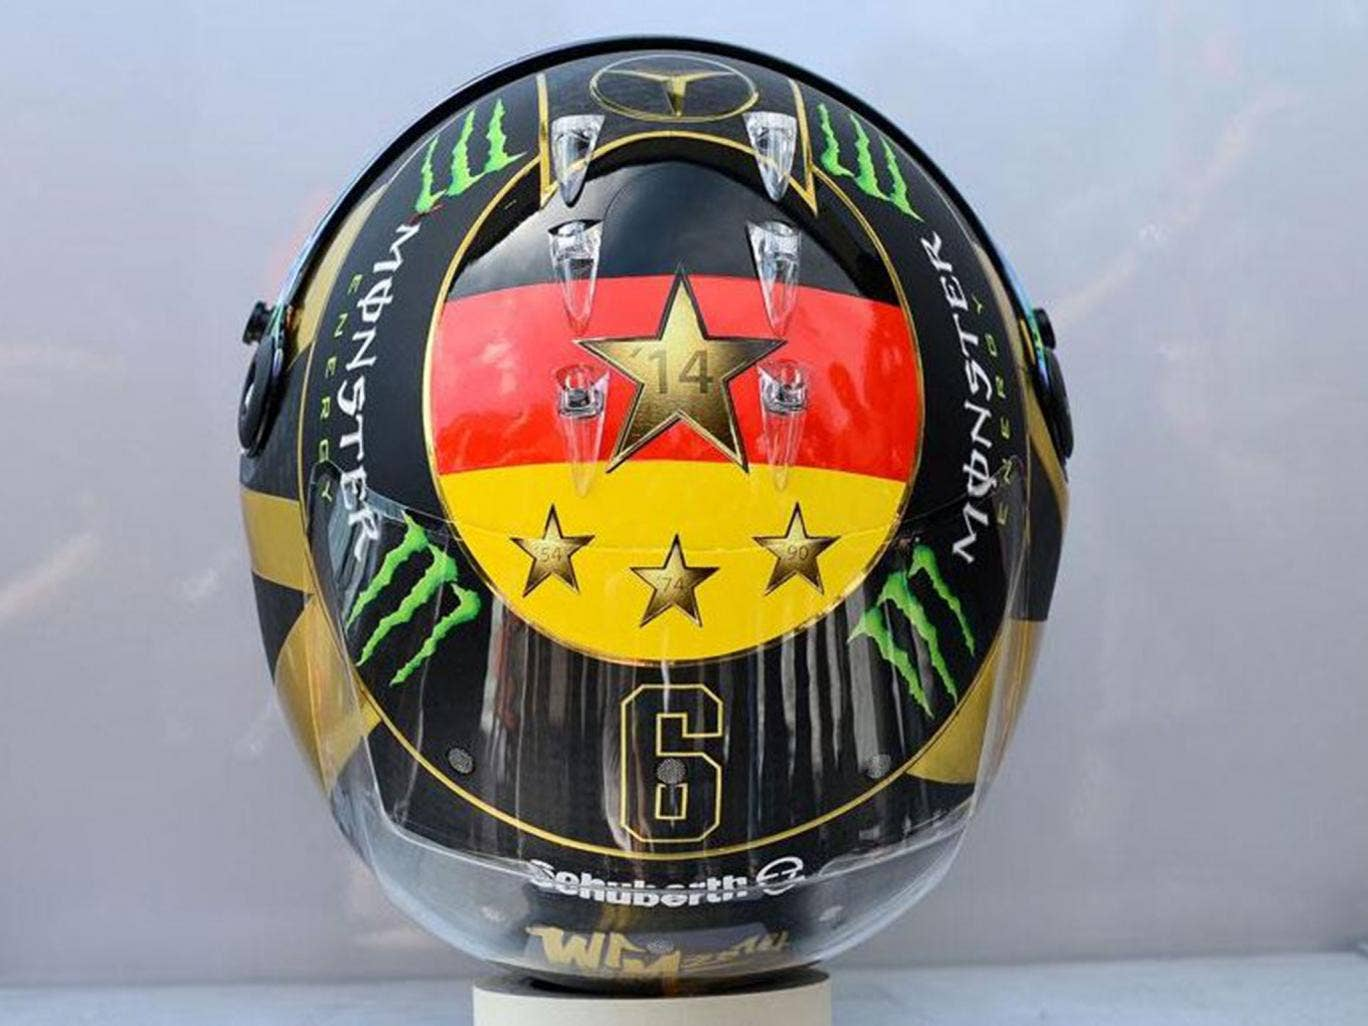 Nico Rosberg has had to change the planned design of his F1 helmet because it previously featured an image of the World Cup trophy